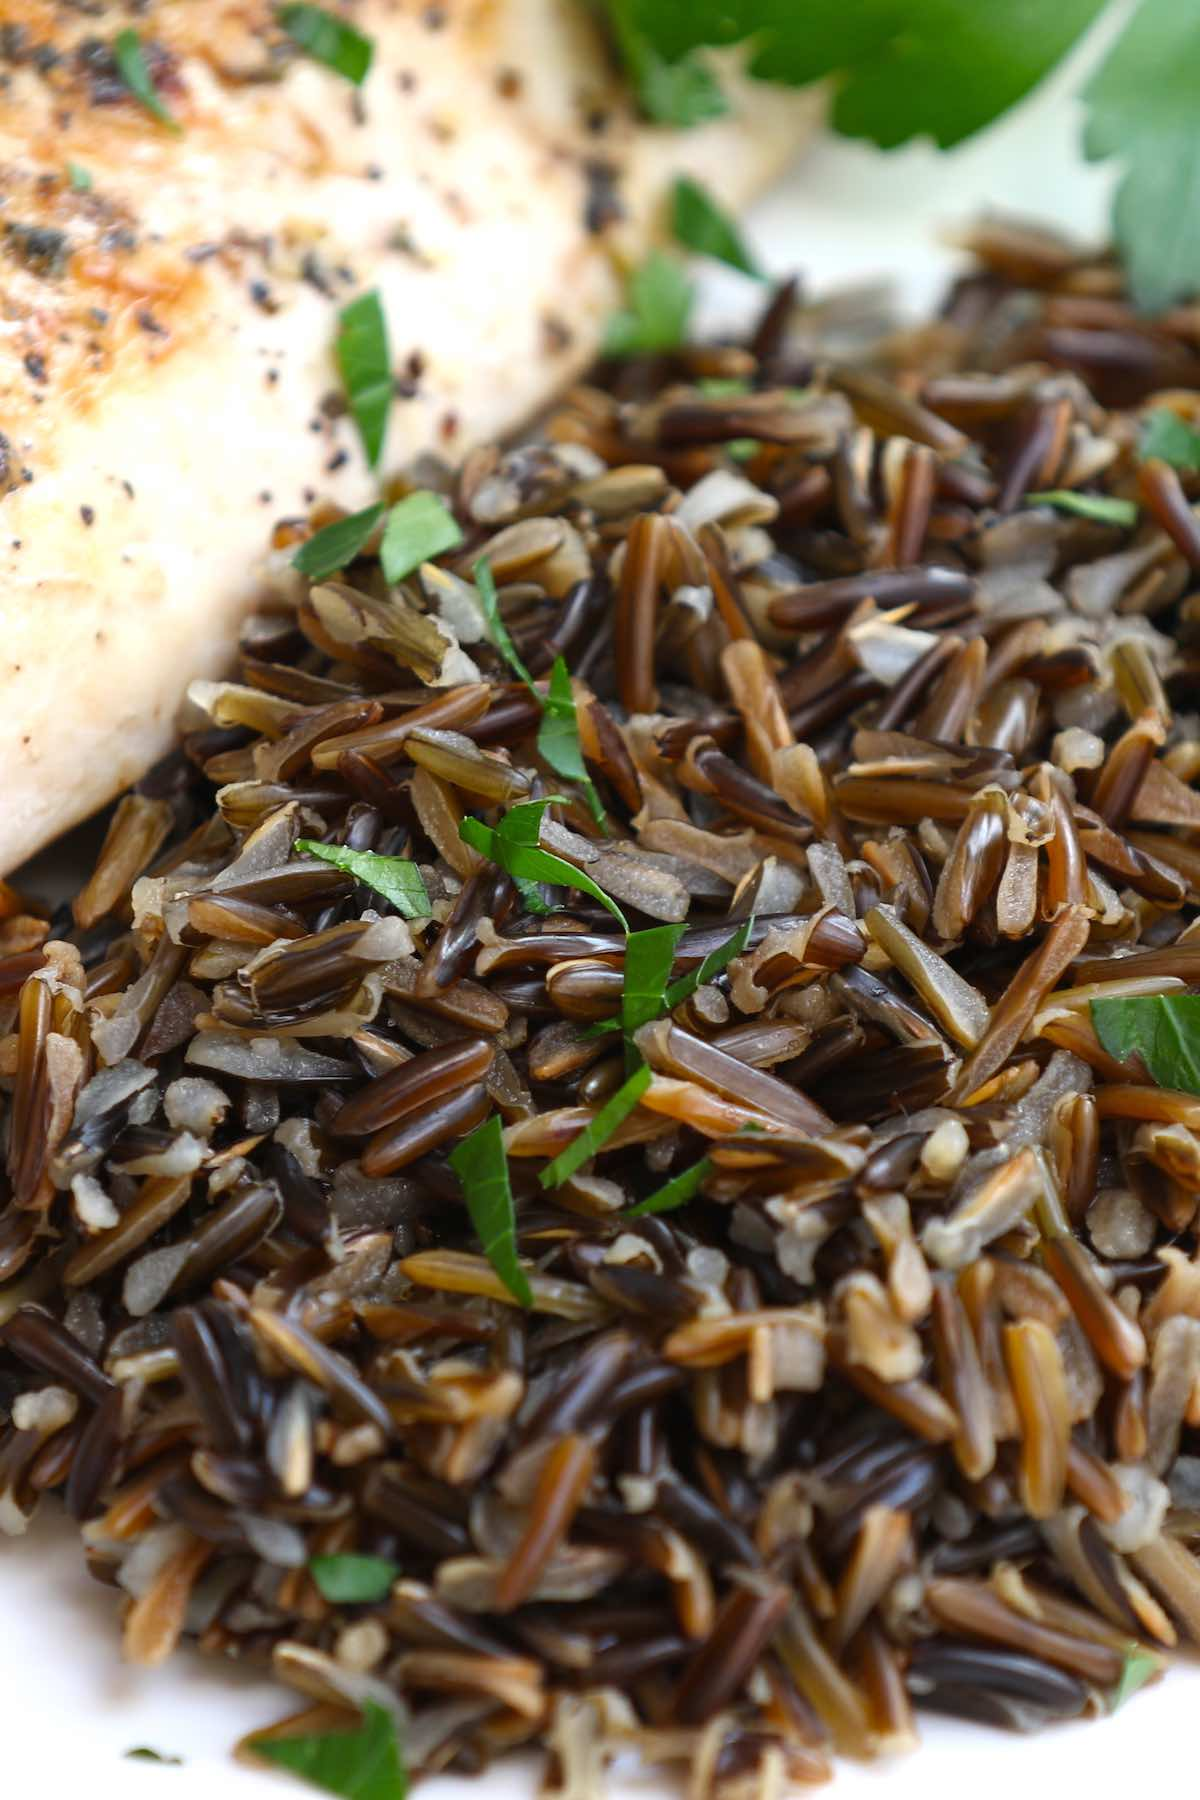 Closeup of wild rice as a side dish for baked chicken breast, all garnished with fresh parsley